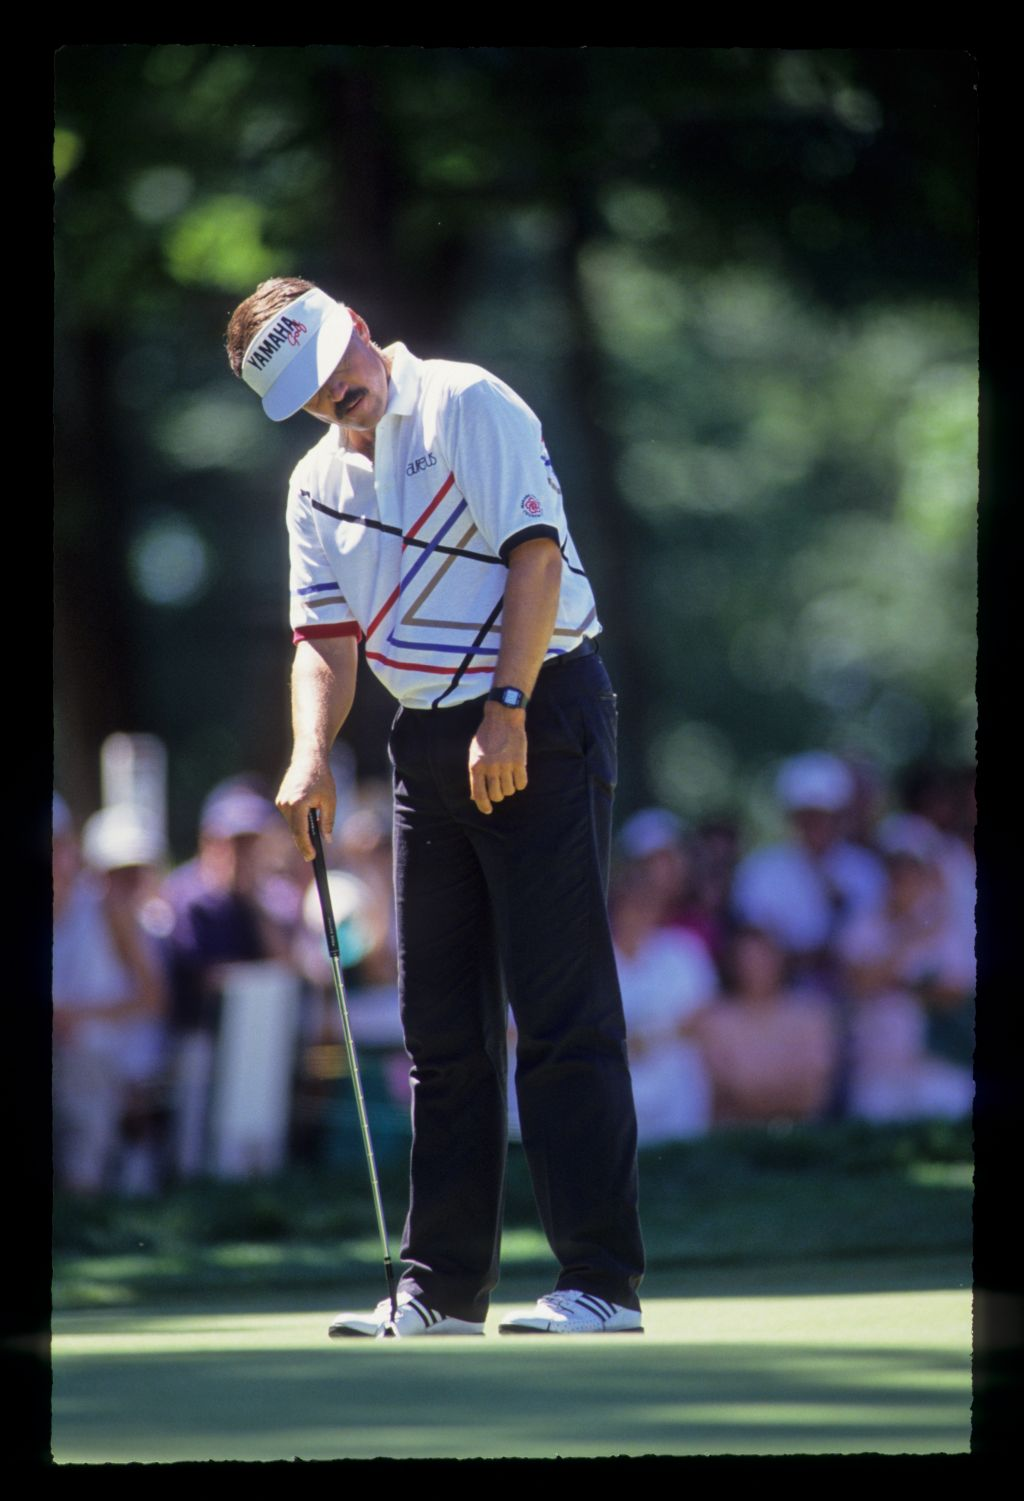 Scott Simpson looking askance at a putt during the 1991 US Open